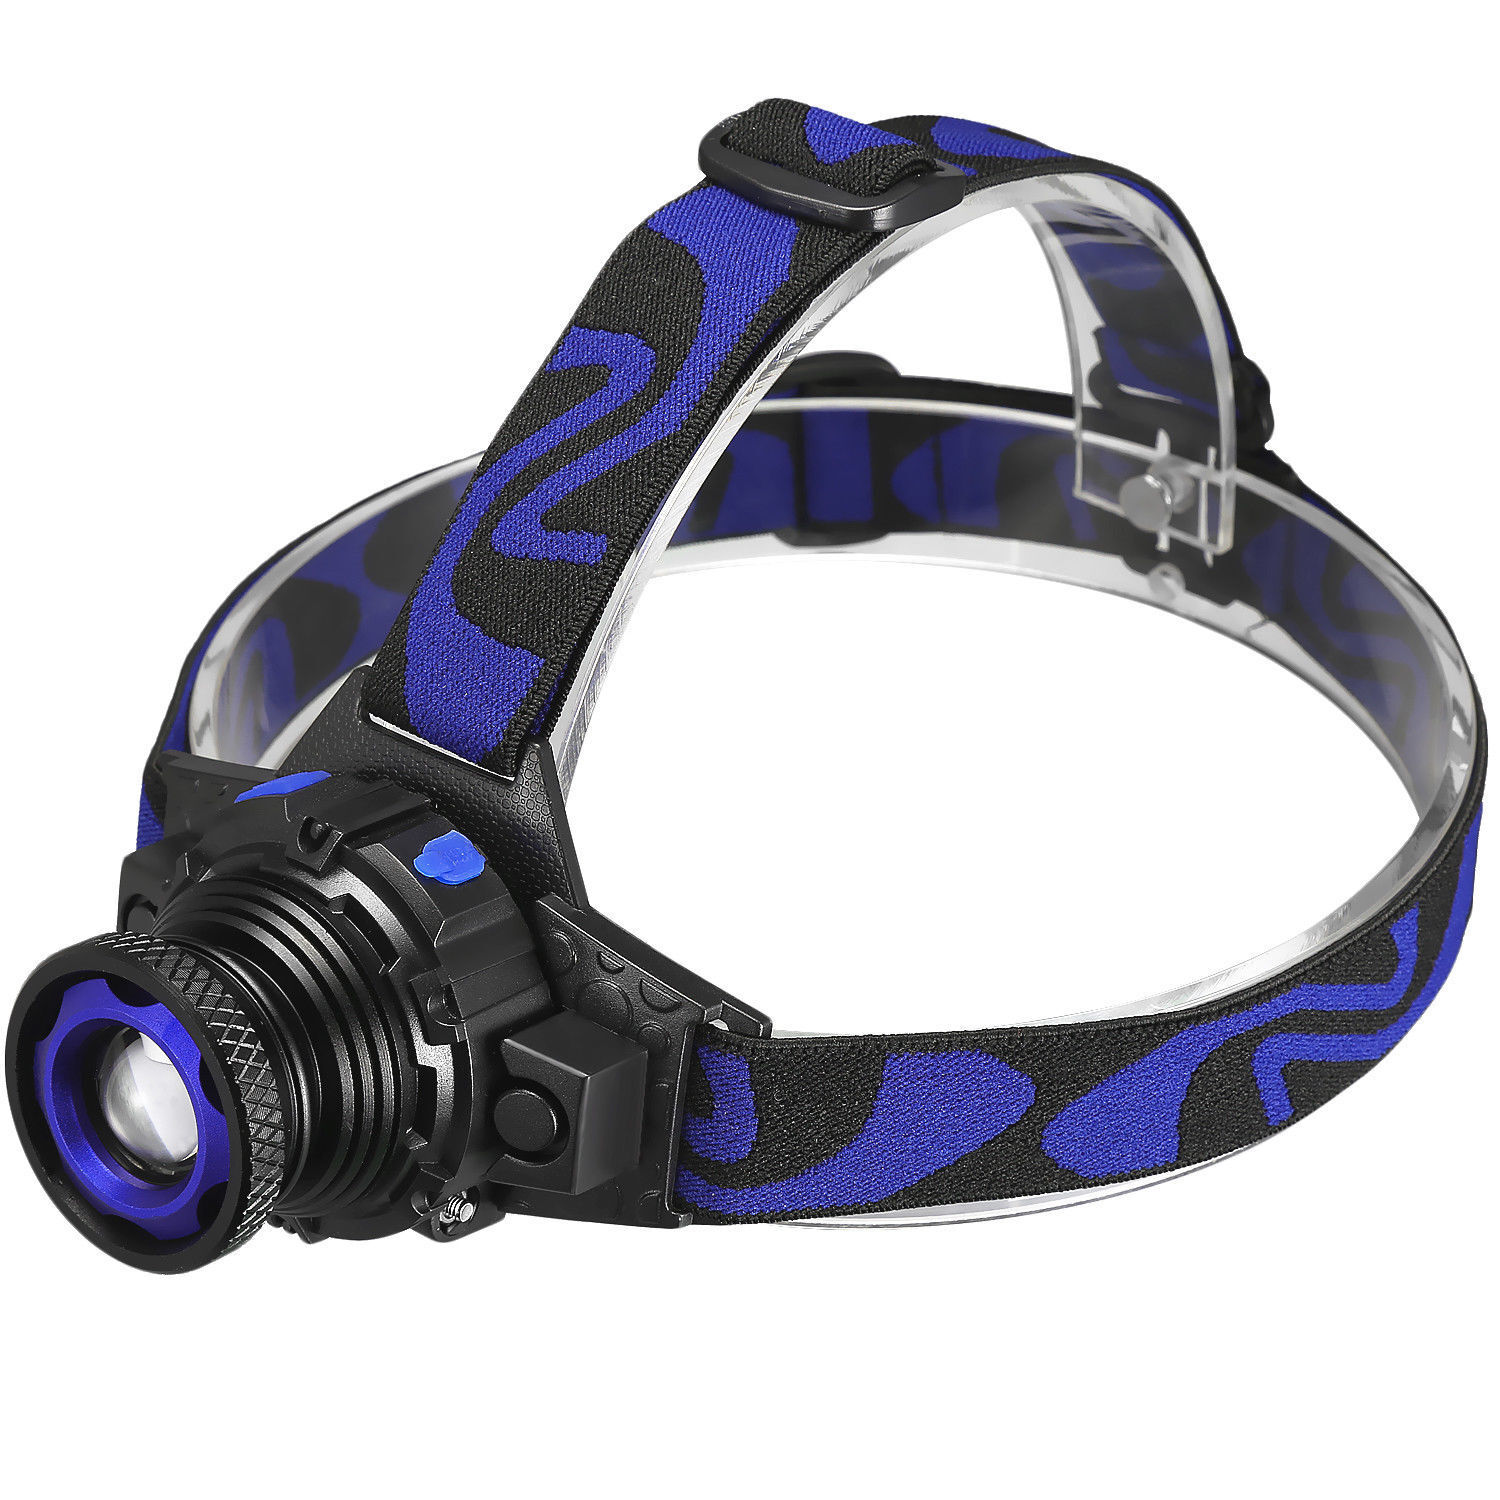 36000LM Zoomable Headlamp T6 LED Headlight Lamp Flashlight+Charger+18650battery Camping & Hiking